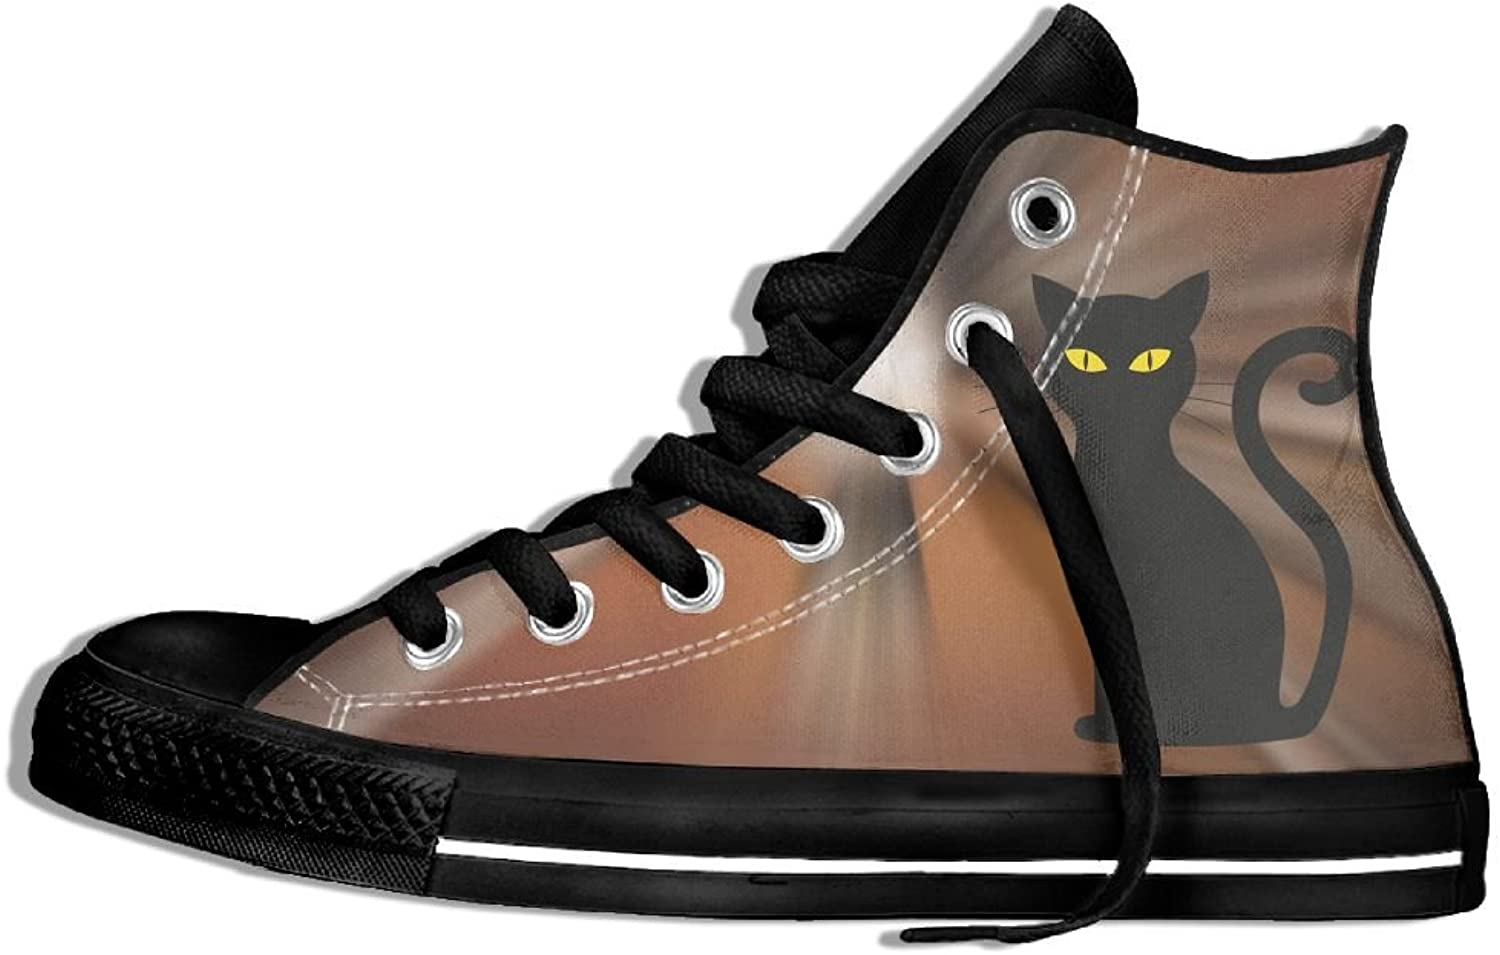 Black Cat Bring Luck Giant High Top Classic Casual Canvas Fashion shoes Sneakers For Women & Men